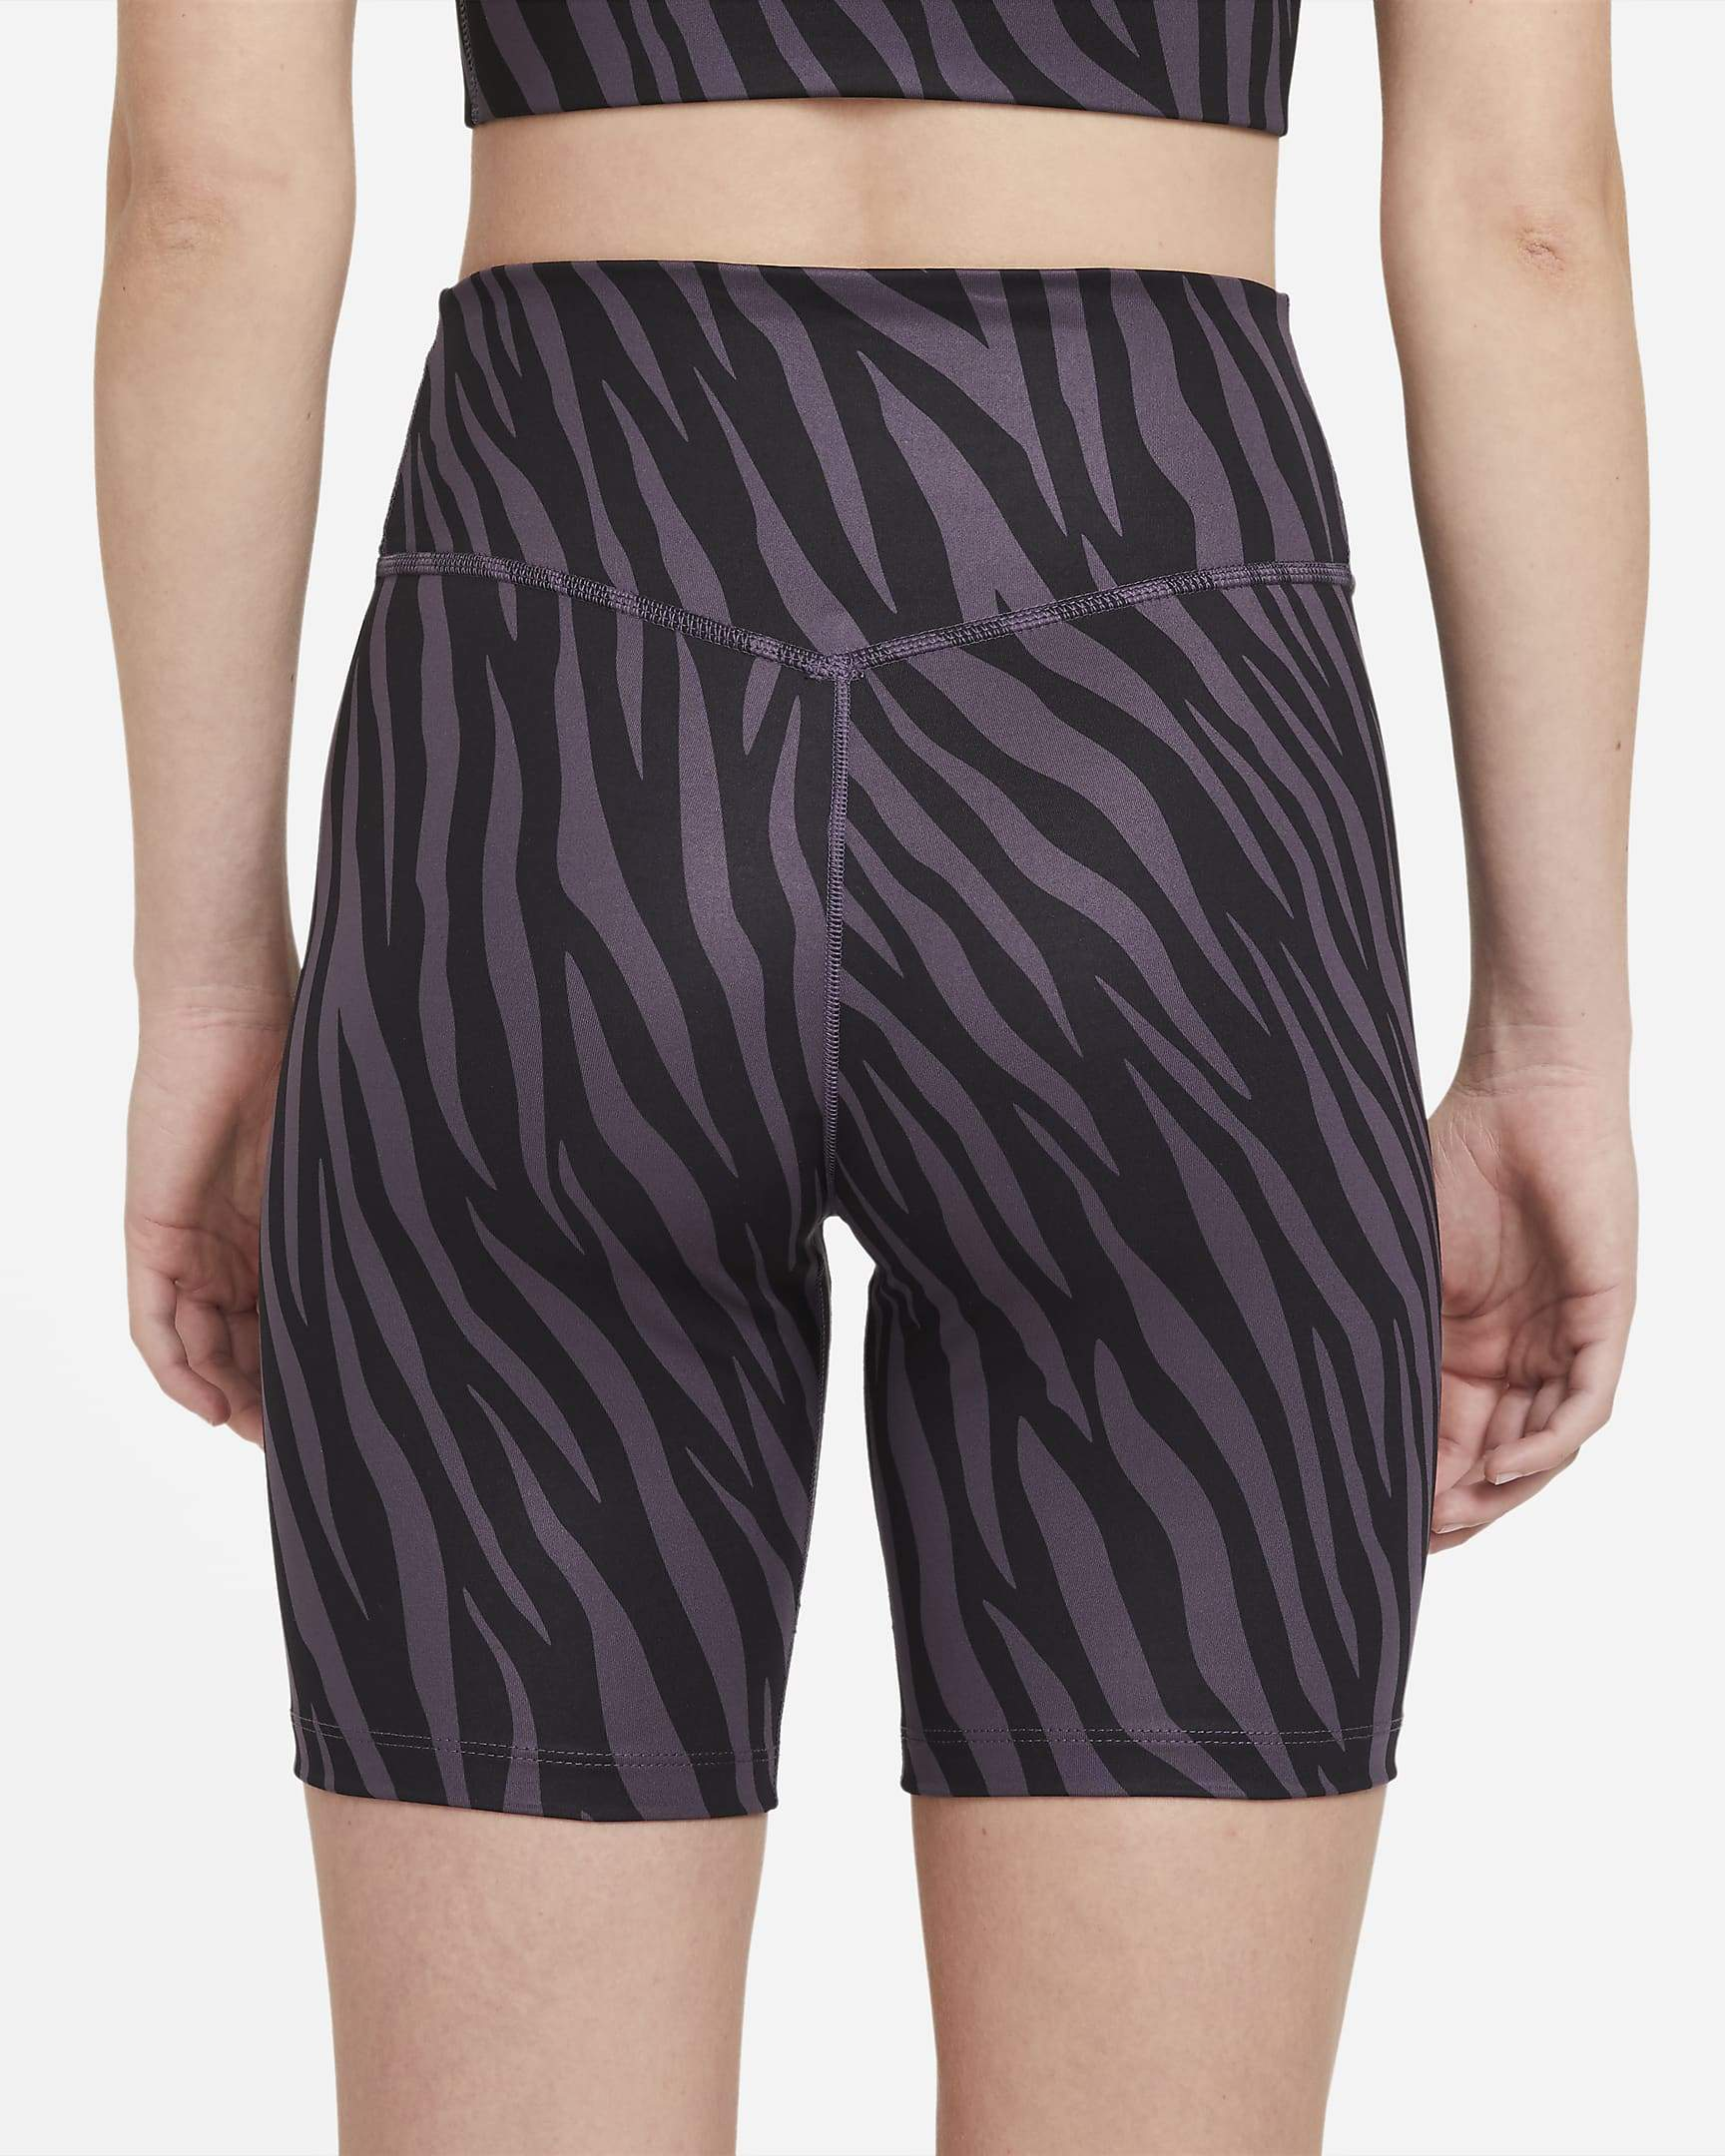 Nike One Women's Bike Shorts - Dark Raisin/White SP-ApparelShorts-Womens Nike